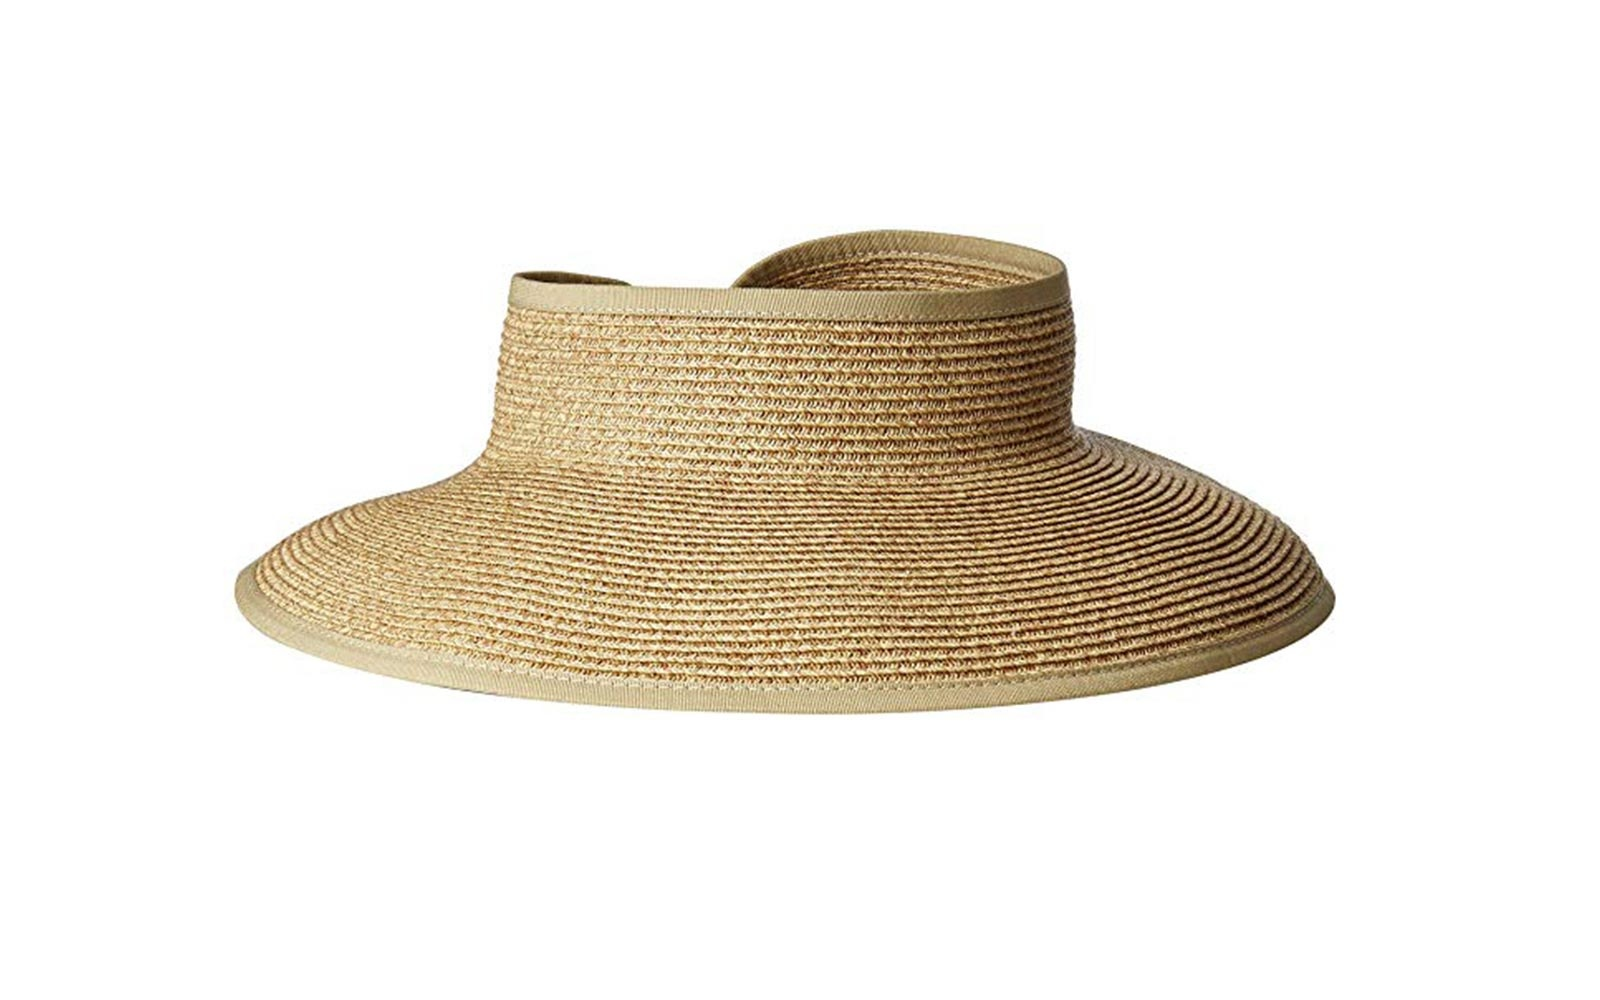 Nine West visor